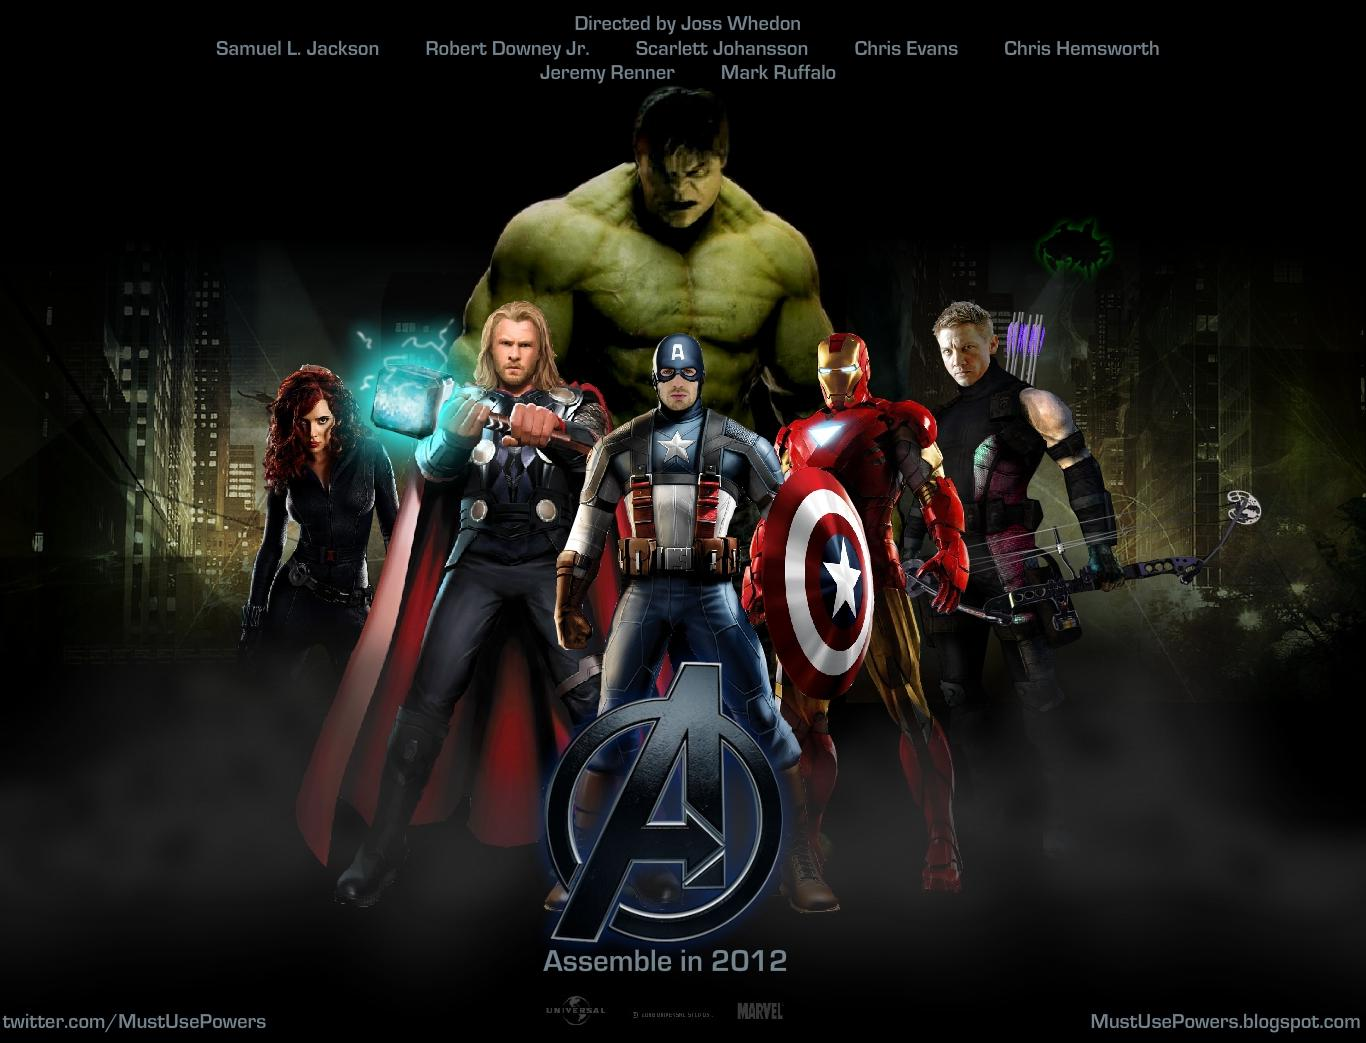 The Avengers - Earth's Mightiest Mortals